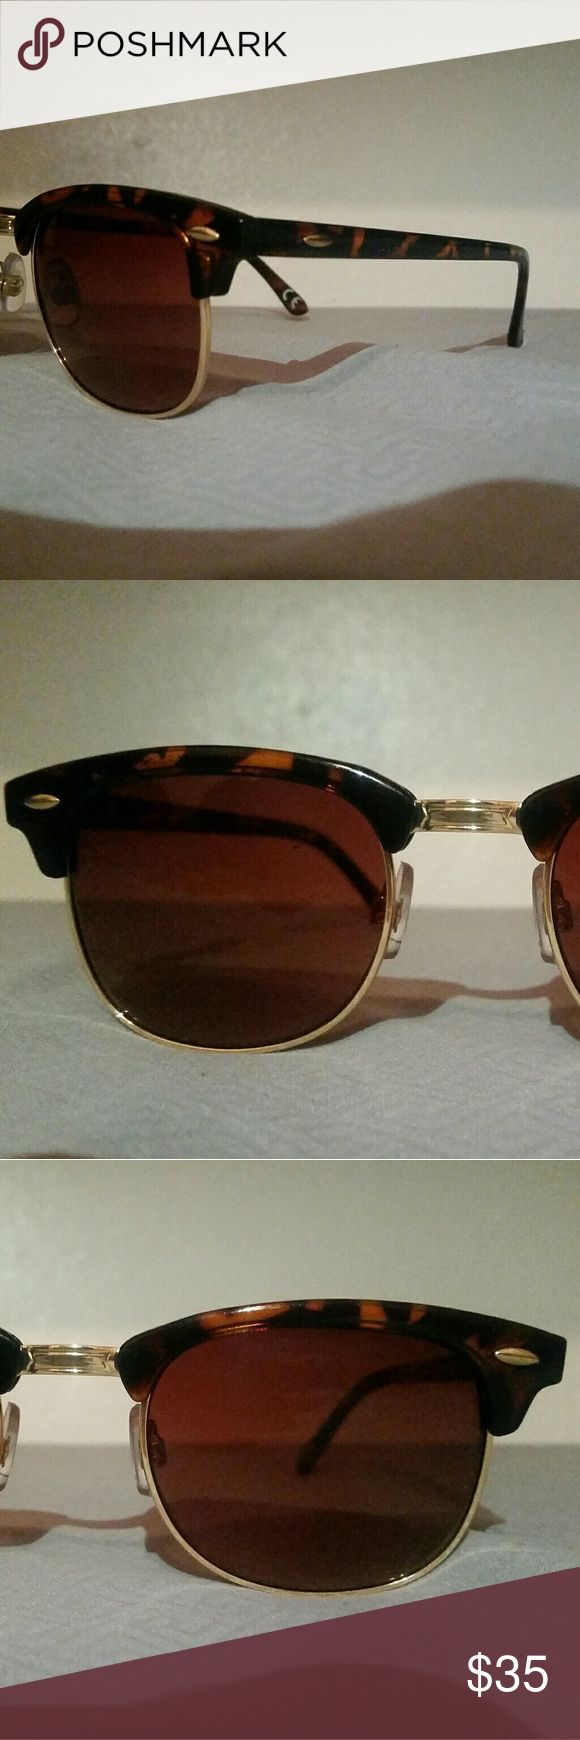 Gold dipped tortoise shell foster grant sunglasses New, never used. Zero scratches. Foster Grant Accessories Glasses